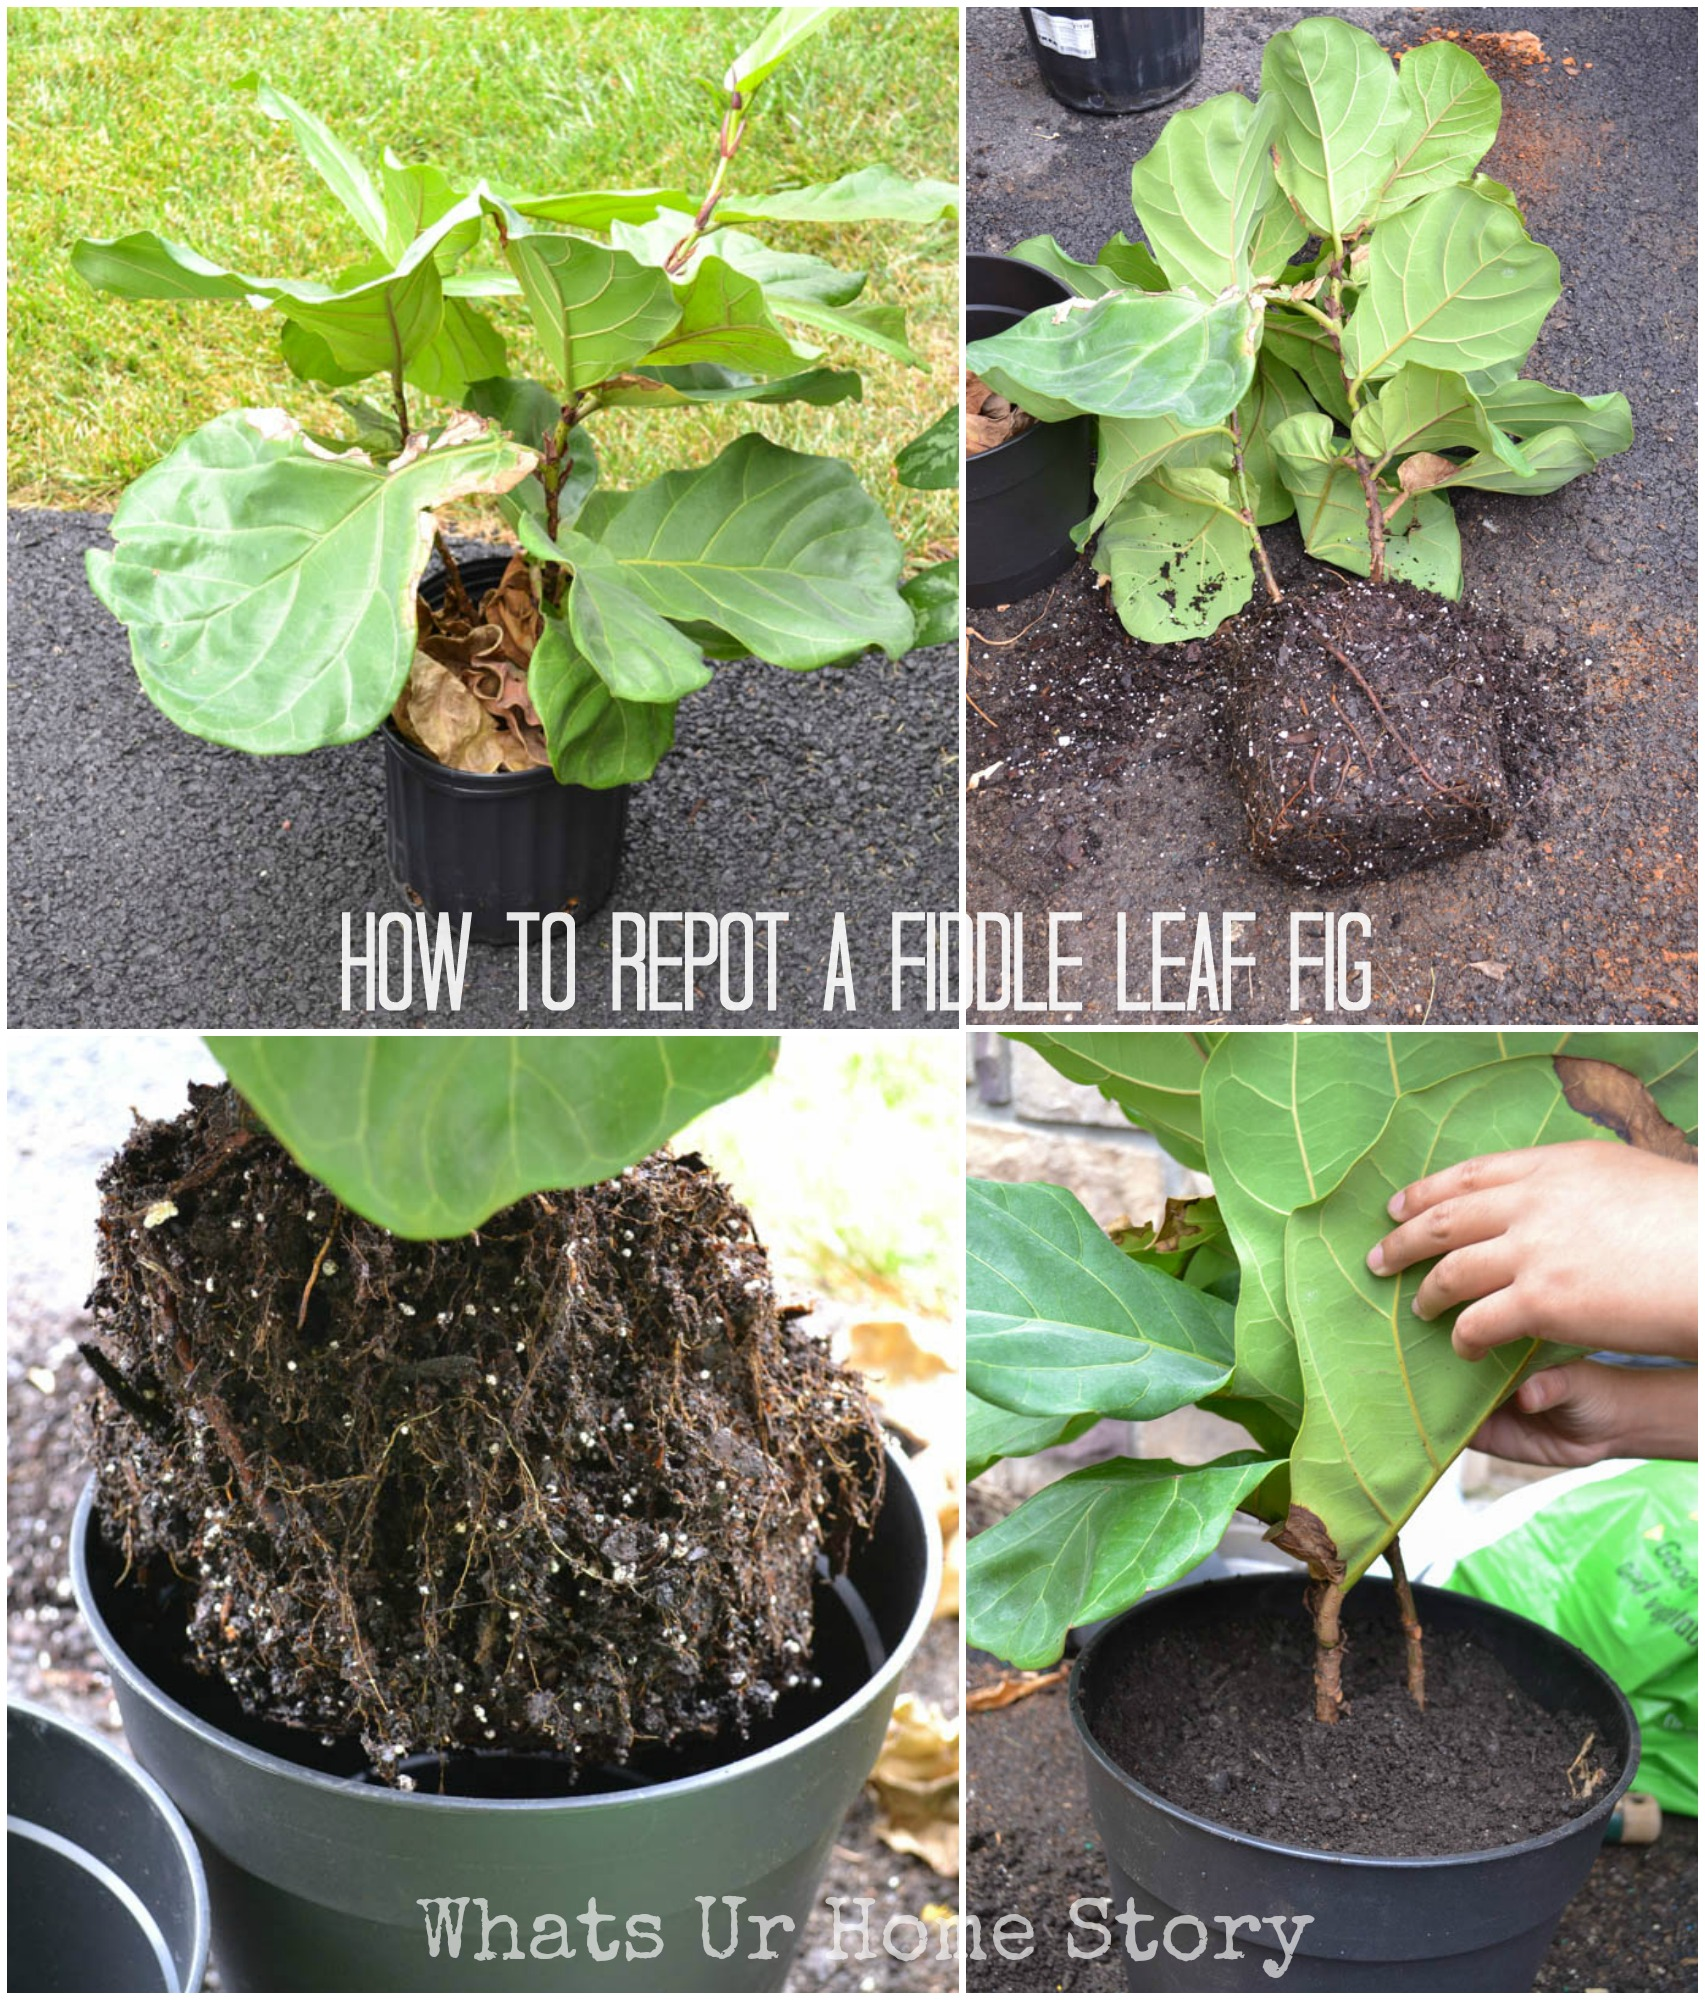 How To Repot A Fiddle